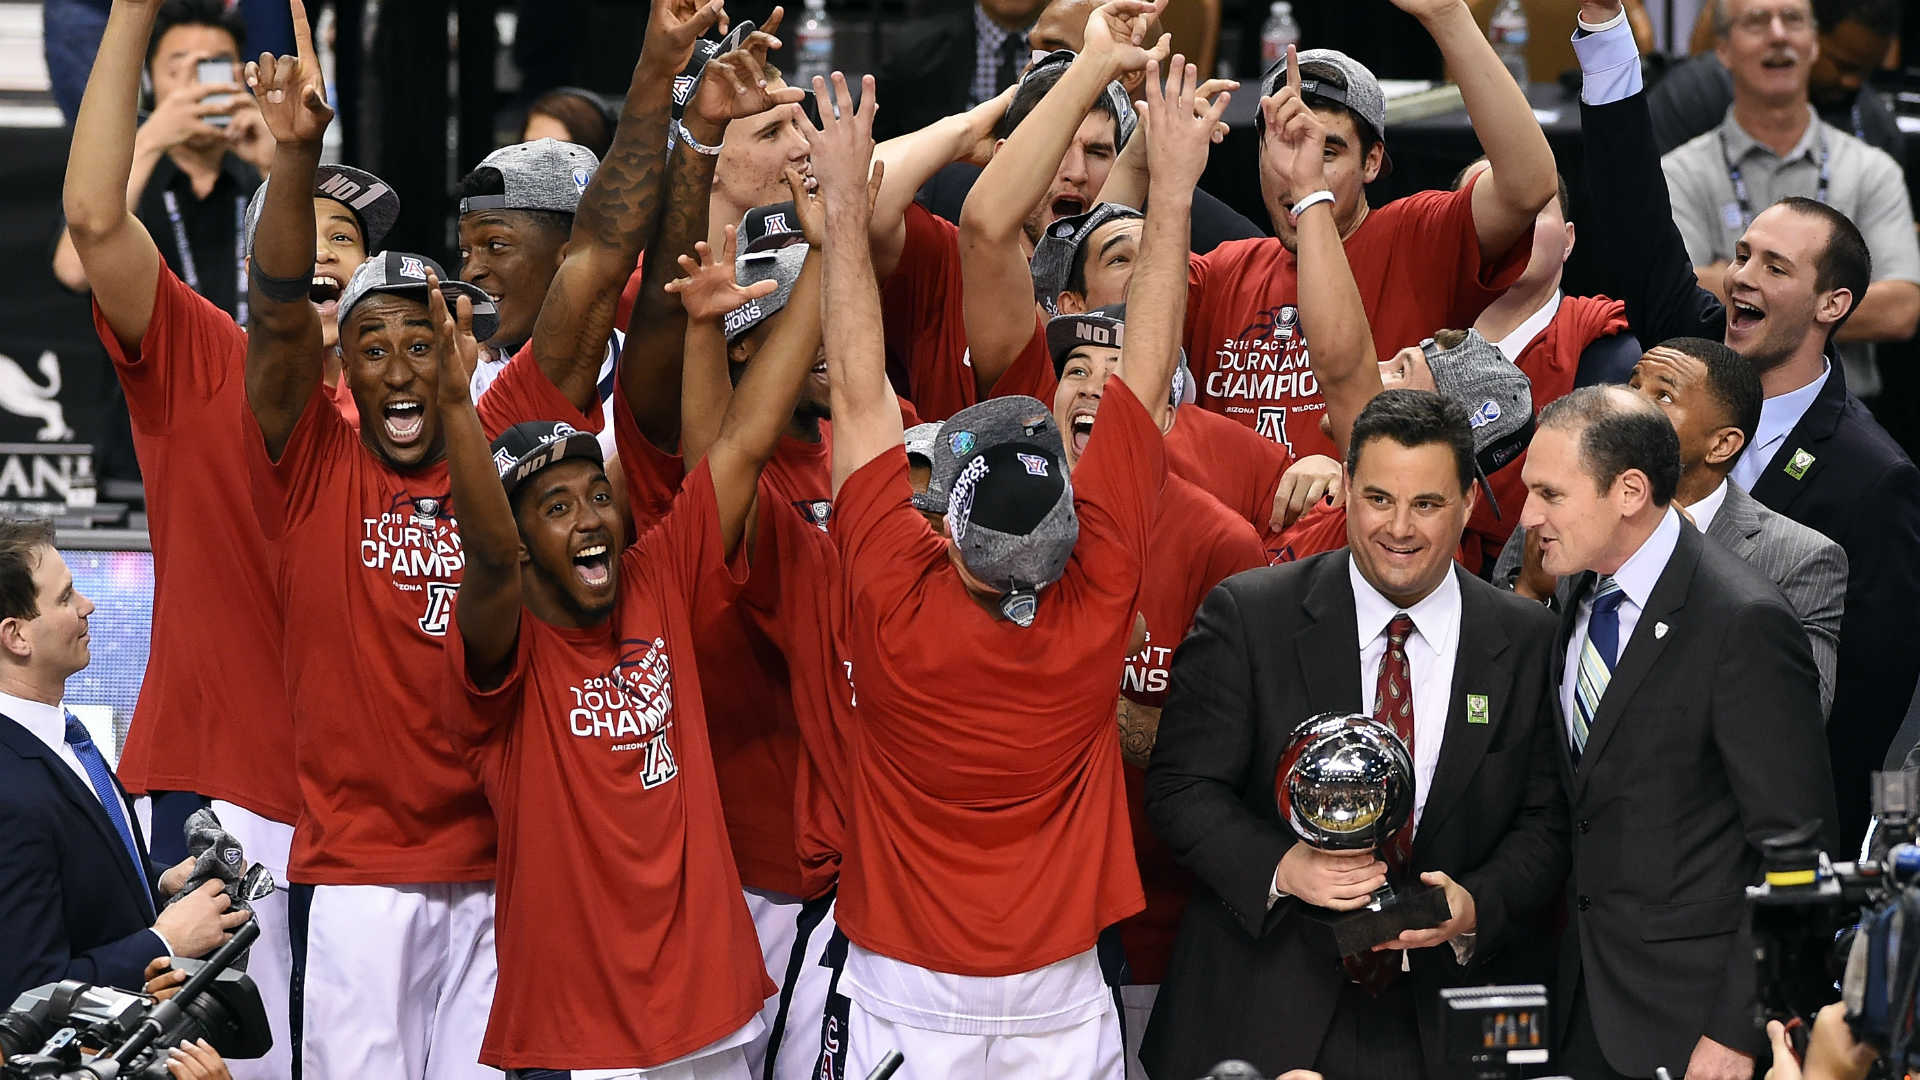 Pac-12 Tournament champion Arizona